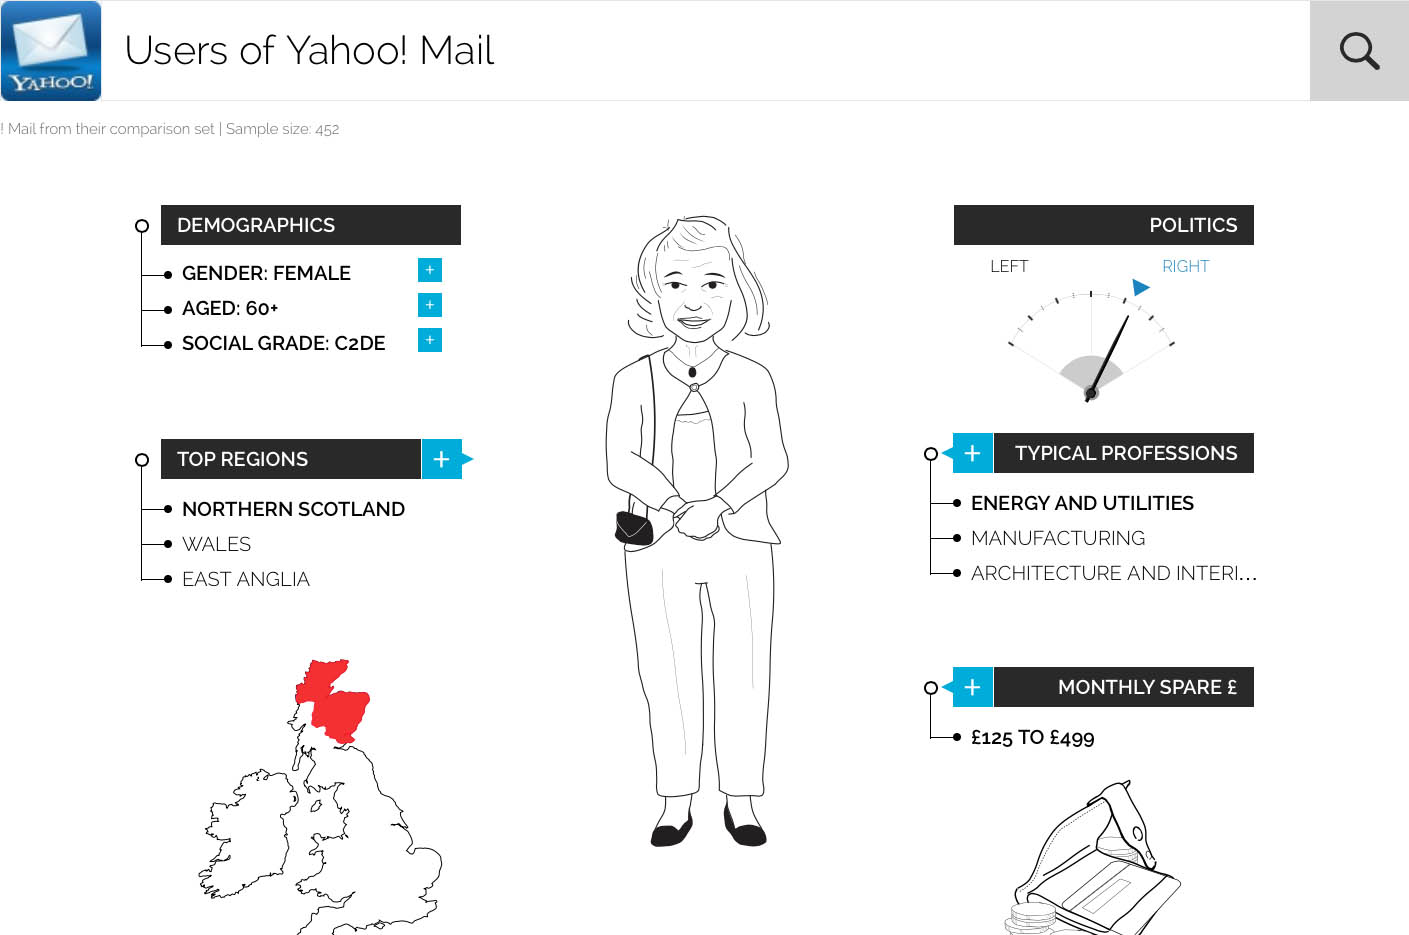 Gmail users like cats, Outlook users like dogs